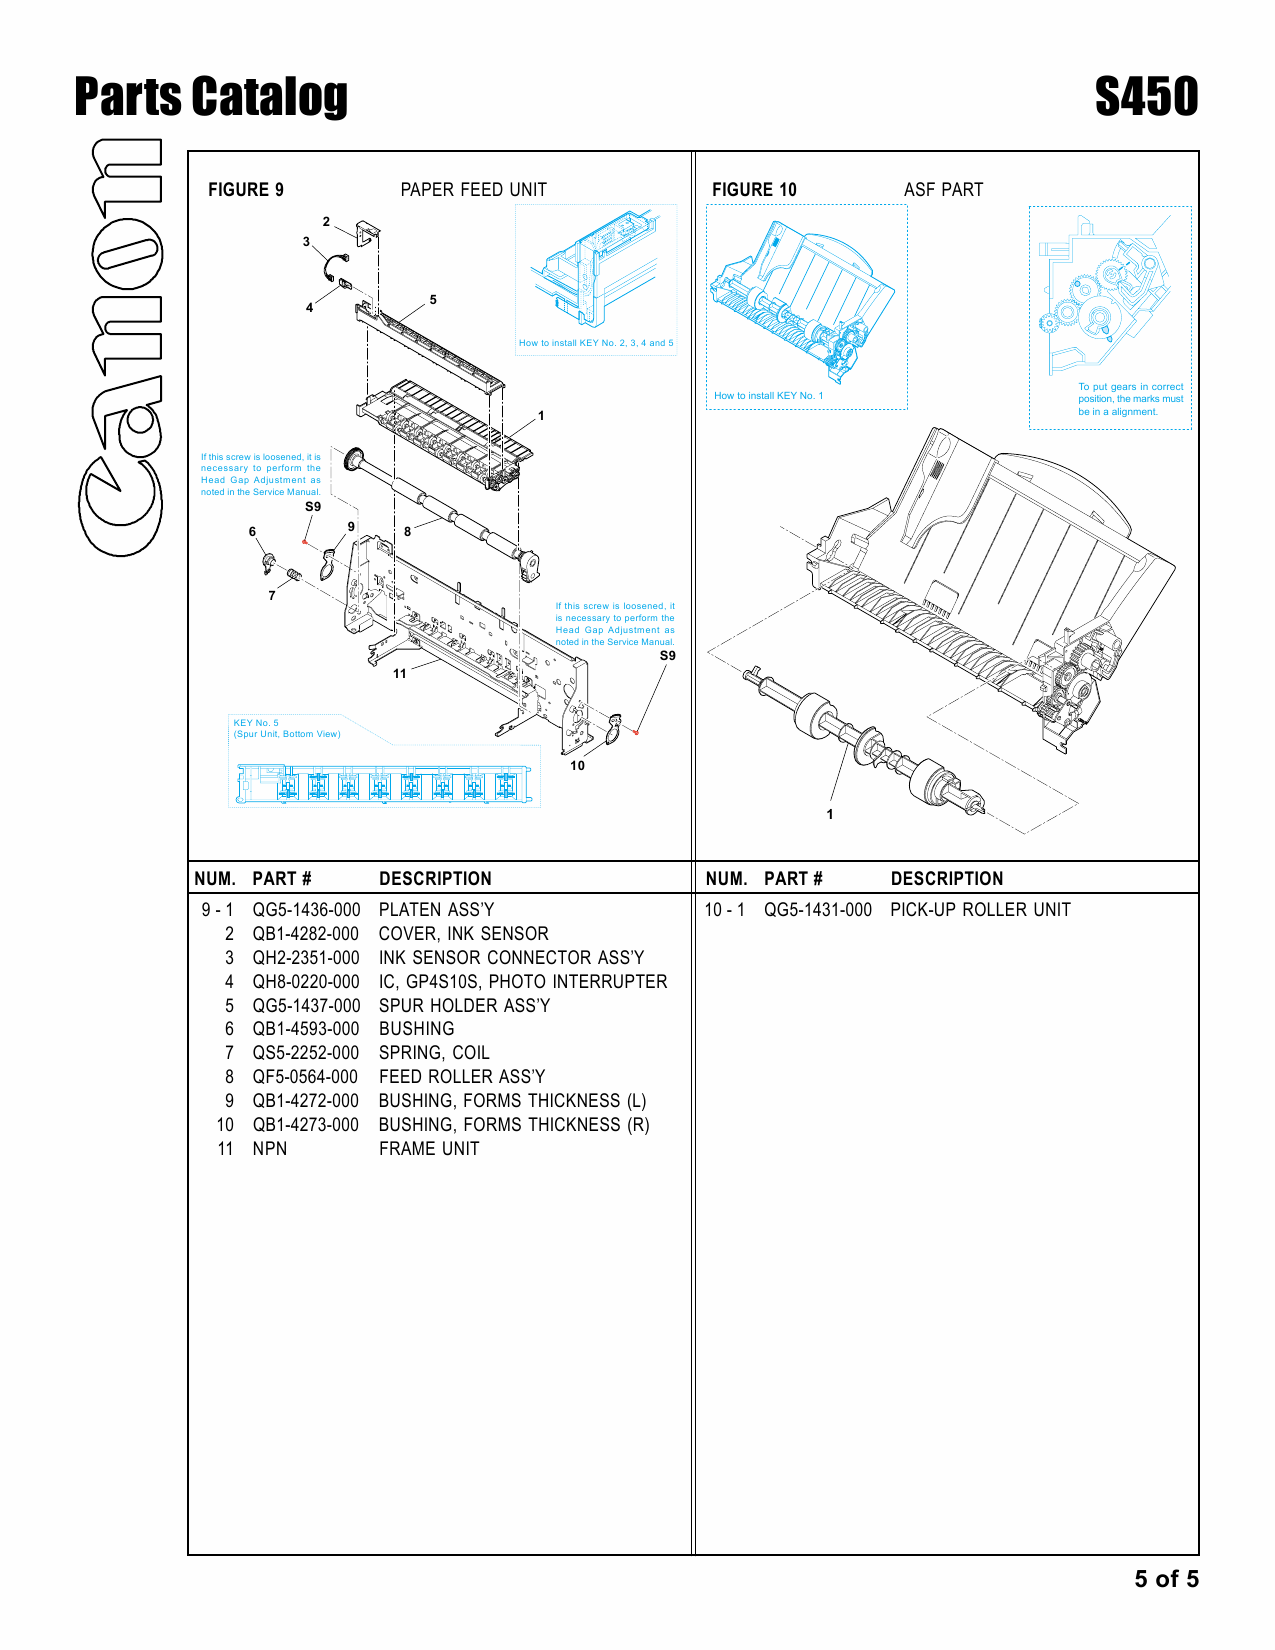 Canon PIXUS S450 Parts Catalog Manual-6